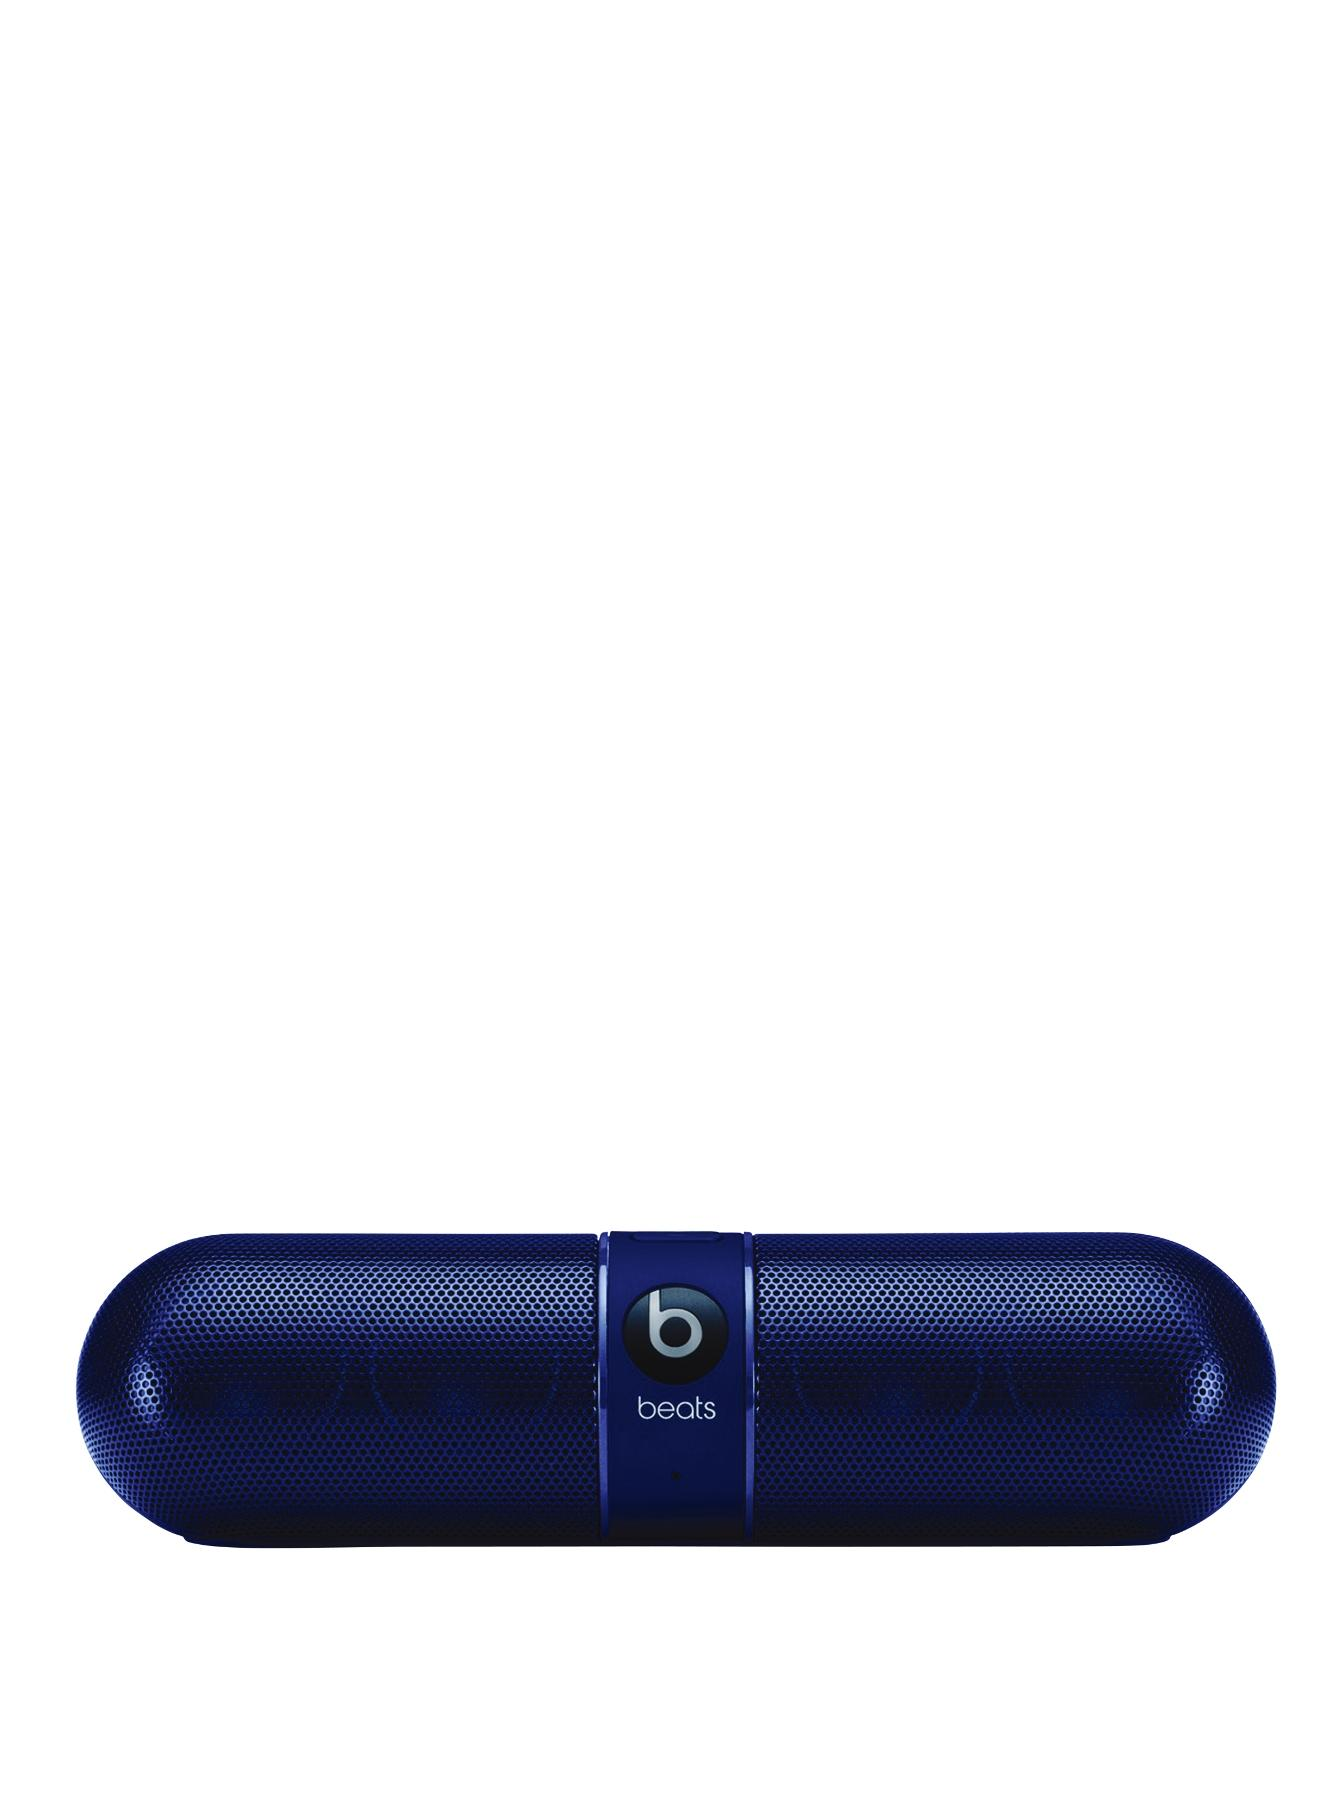 PILL 2.0 Bluetooth Speaker - Blue